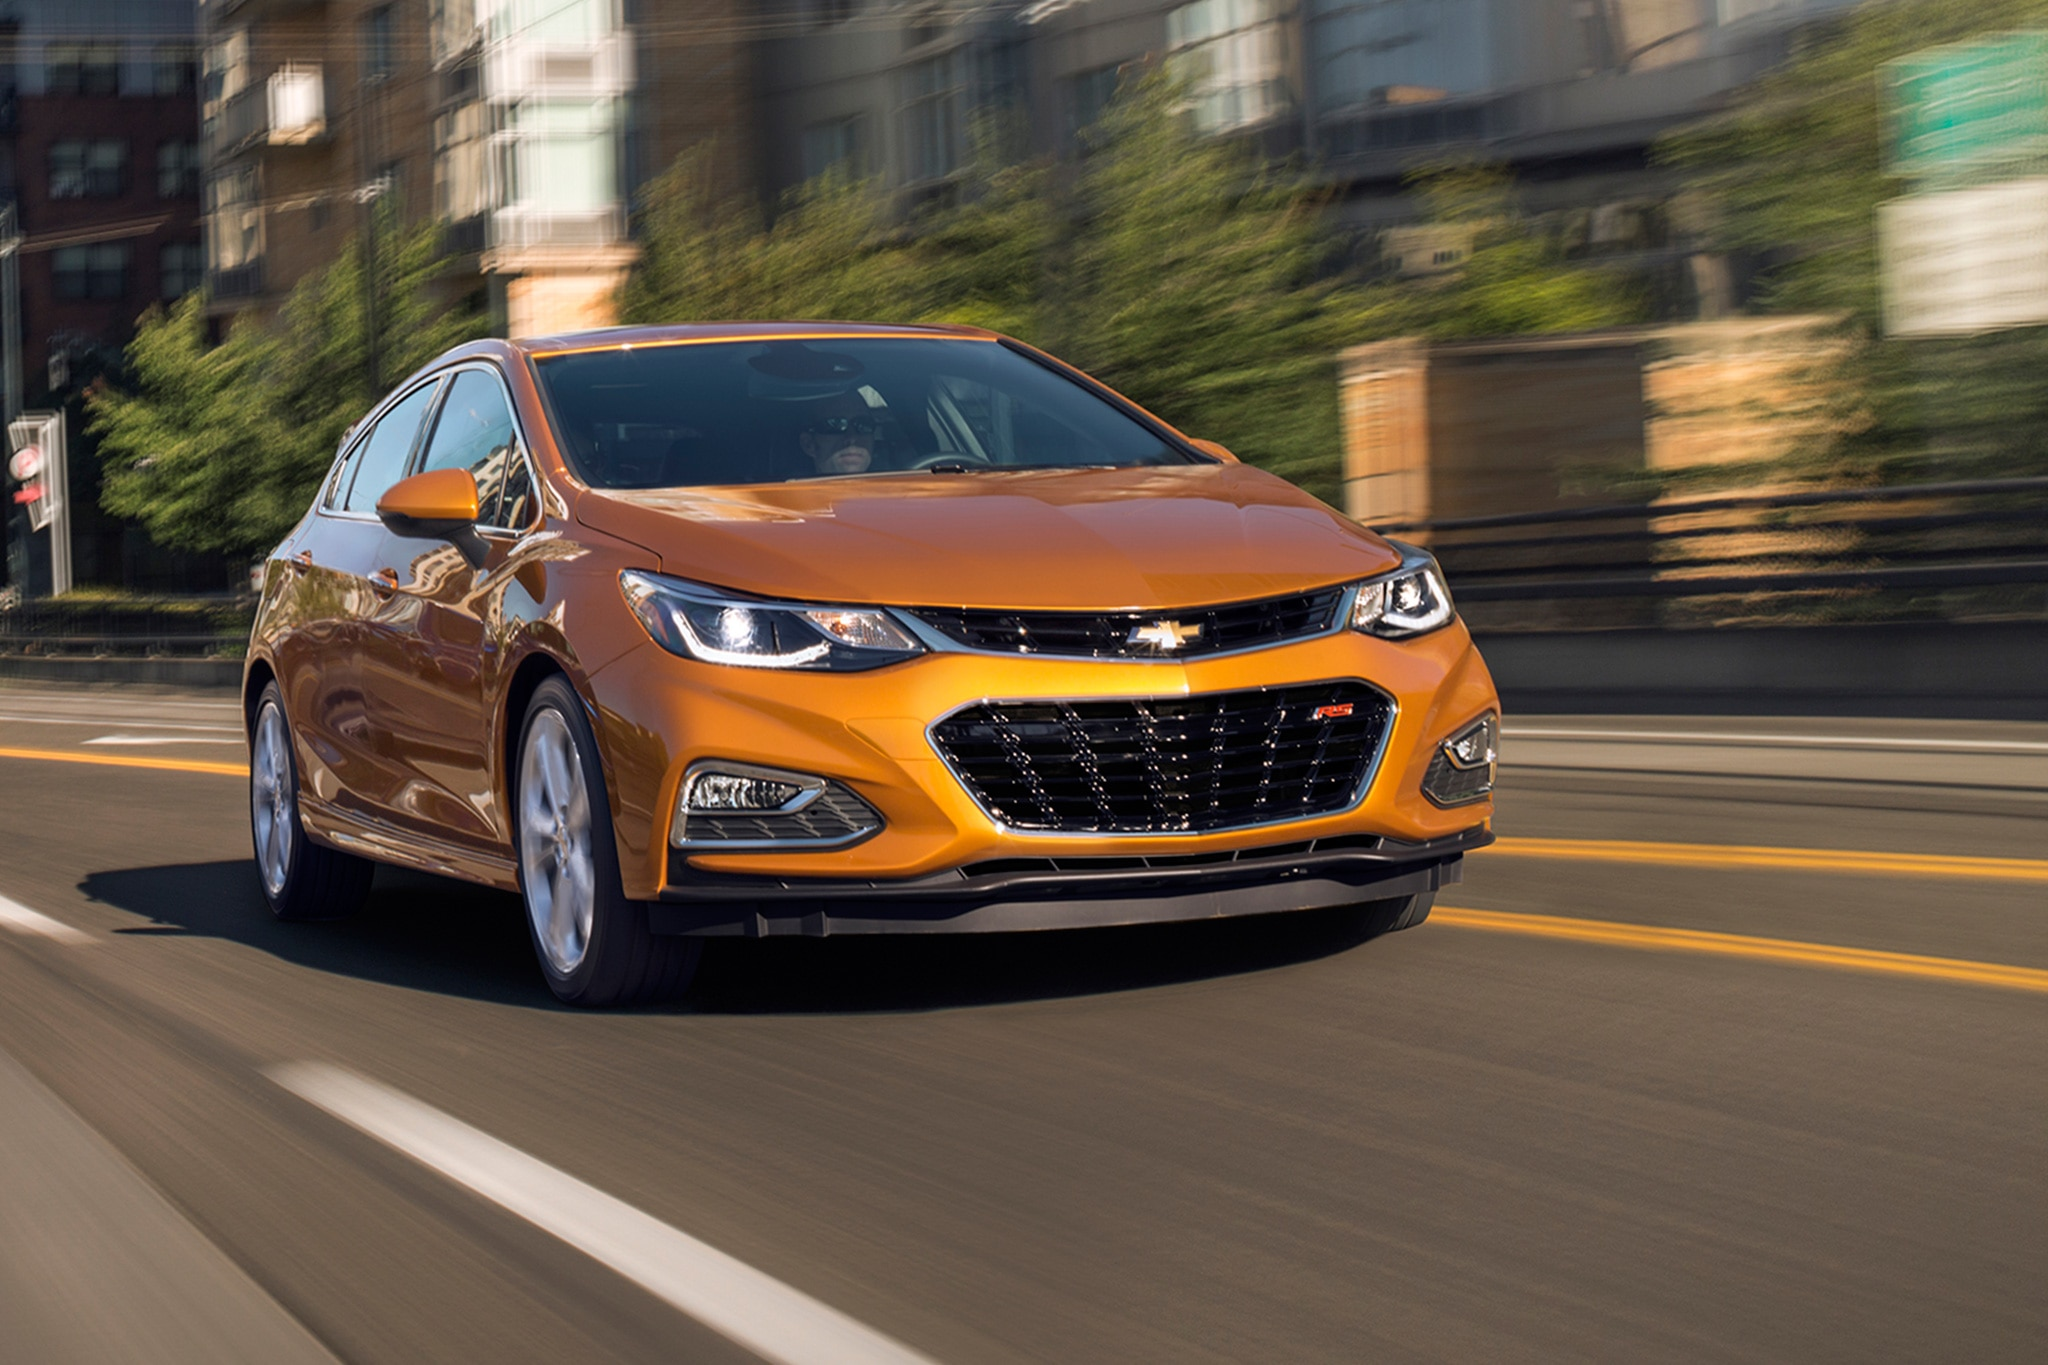 Chevy Cruze Diesel For Sale >> 2017 Chevrolet Cruze Hatchback First Drive Review ...